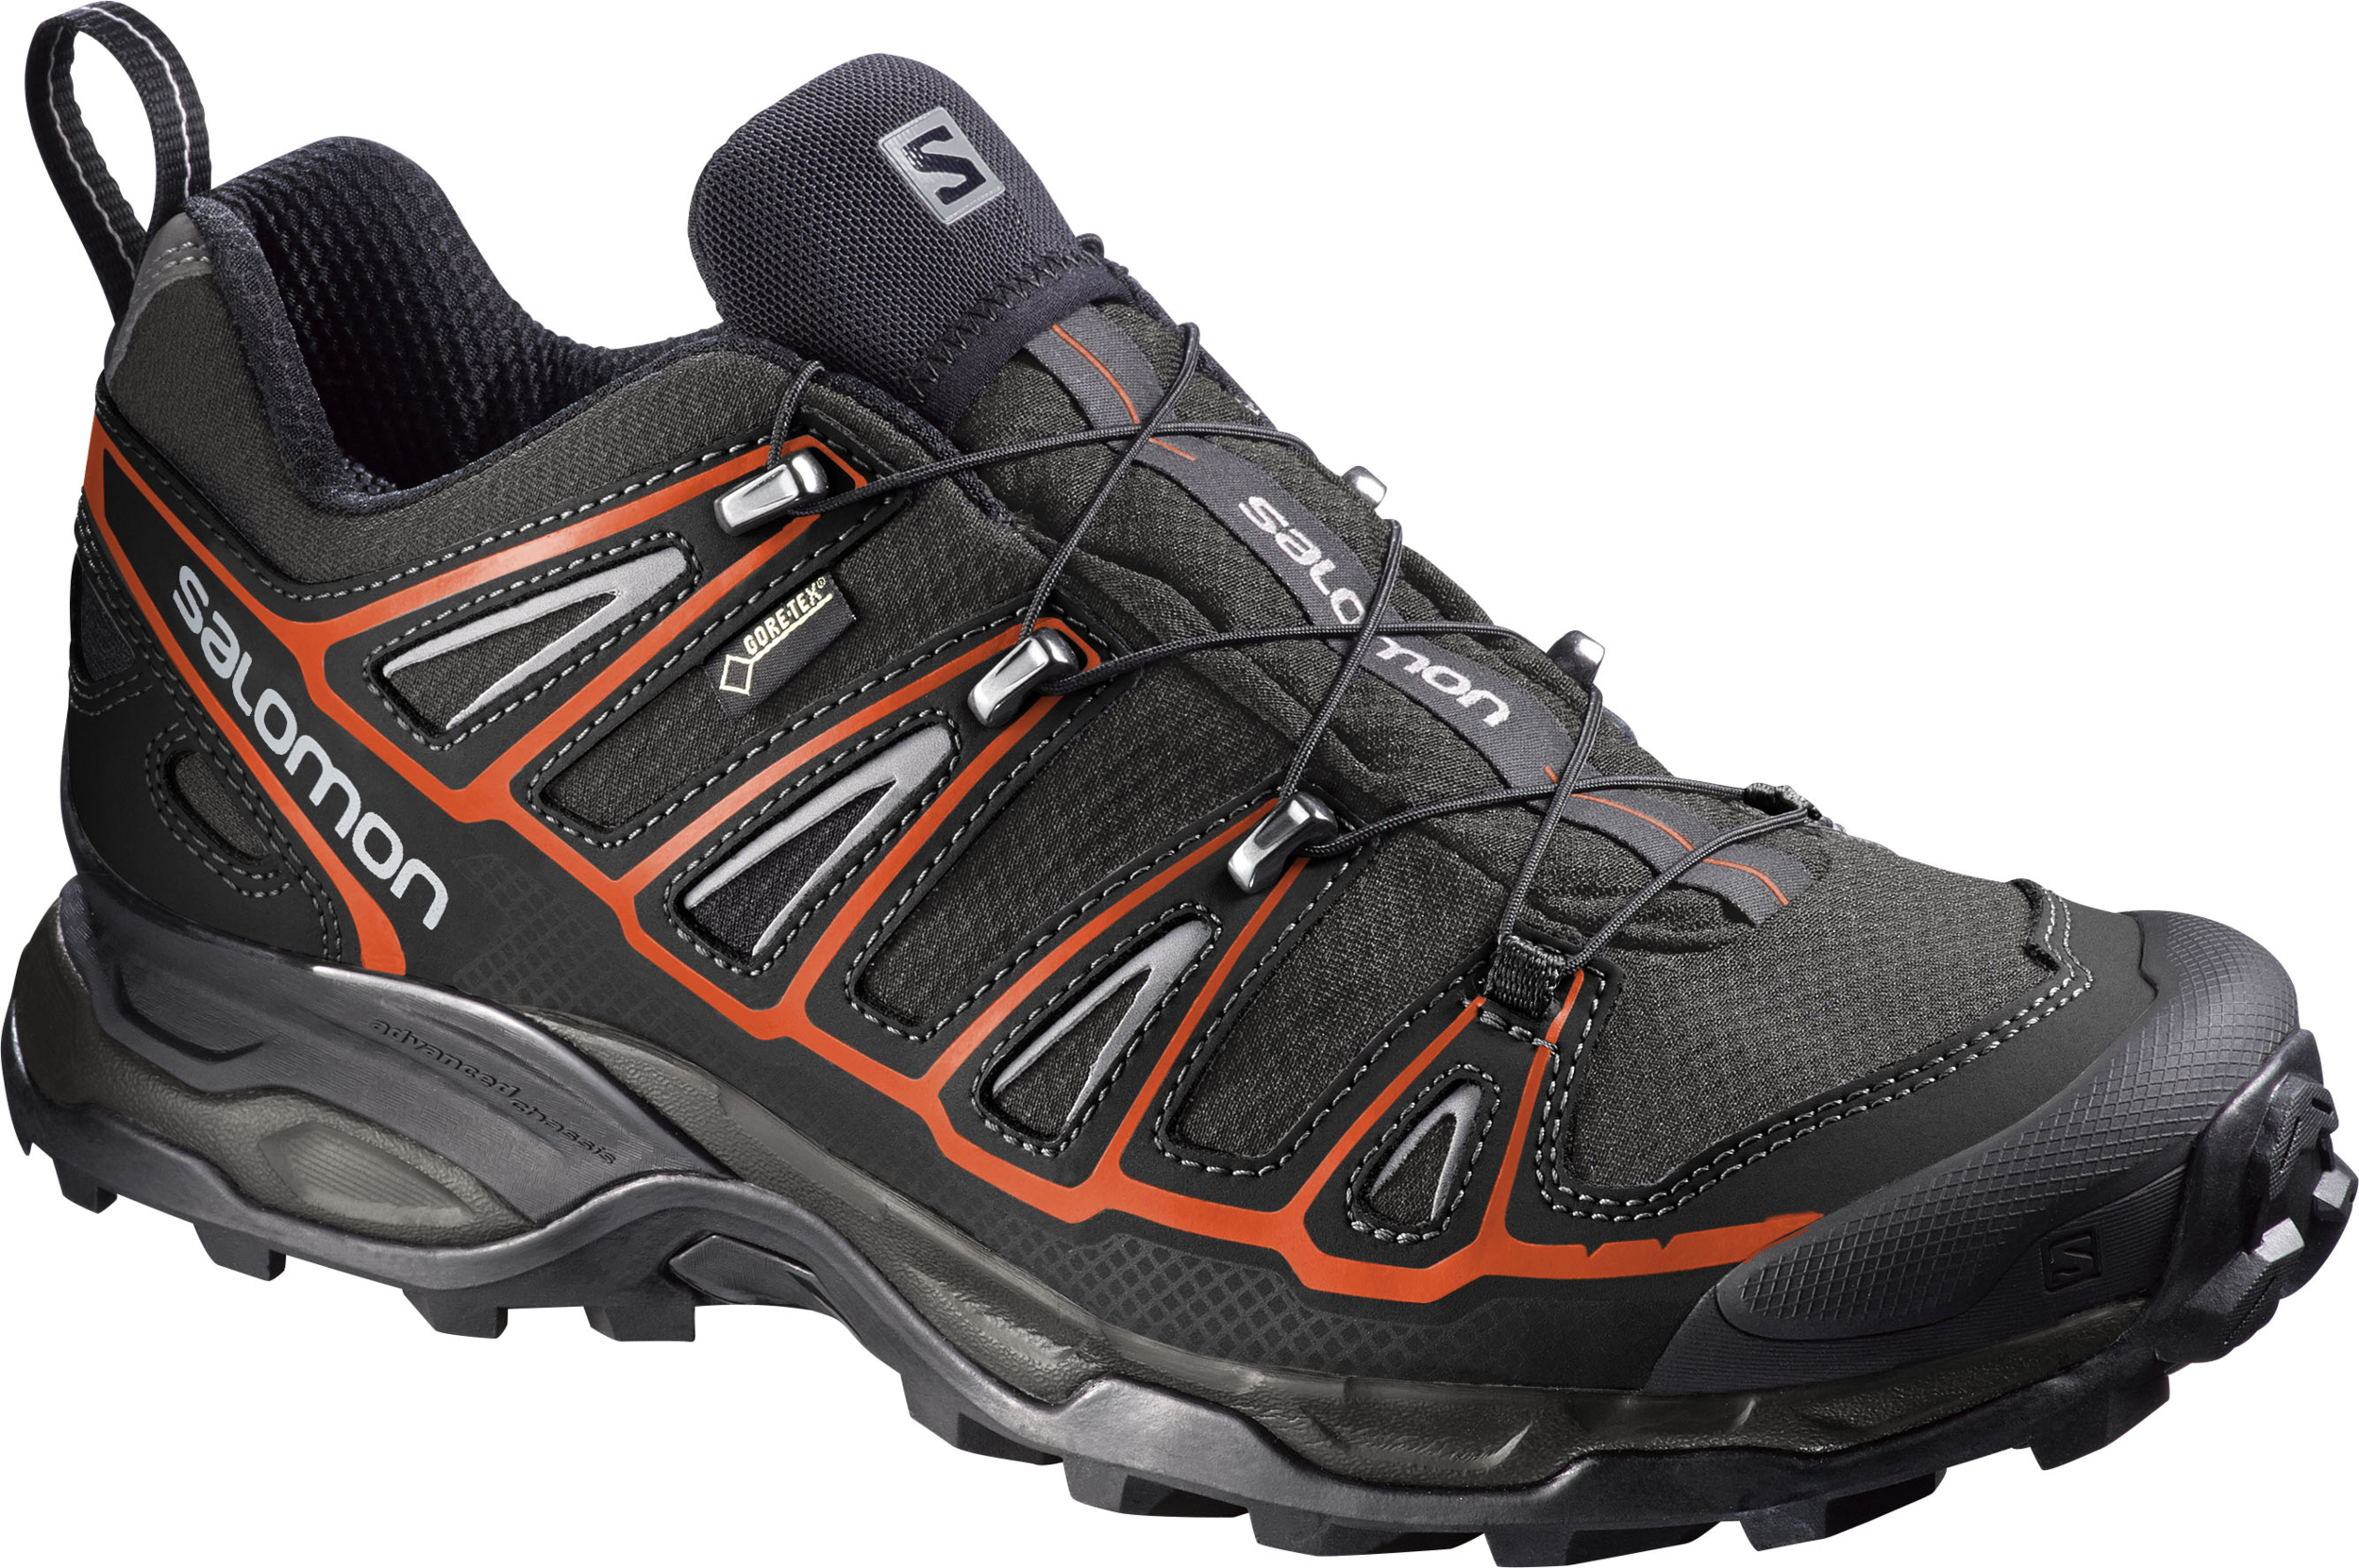 Salomon X Ultra 2 GTX M Autobahn Black Tomato Red 381637 b29af72b2d